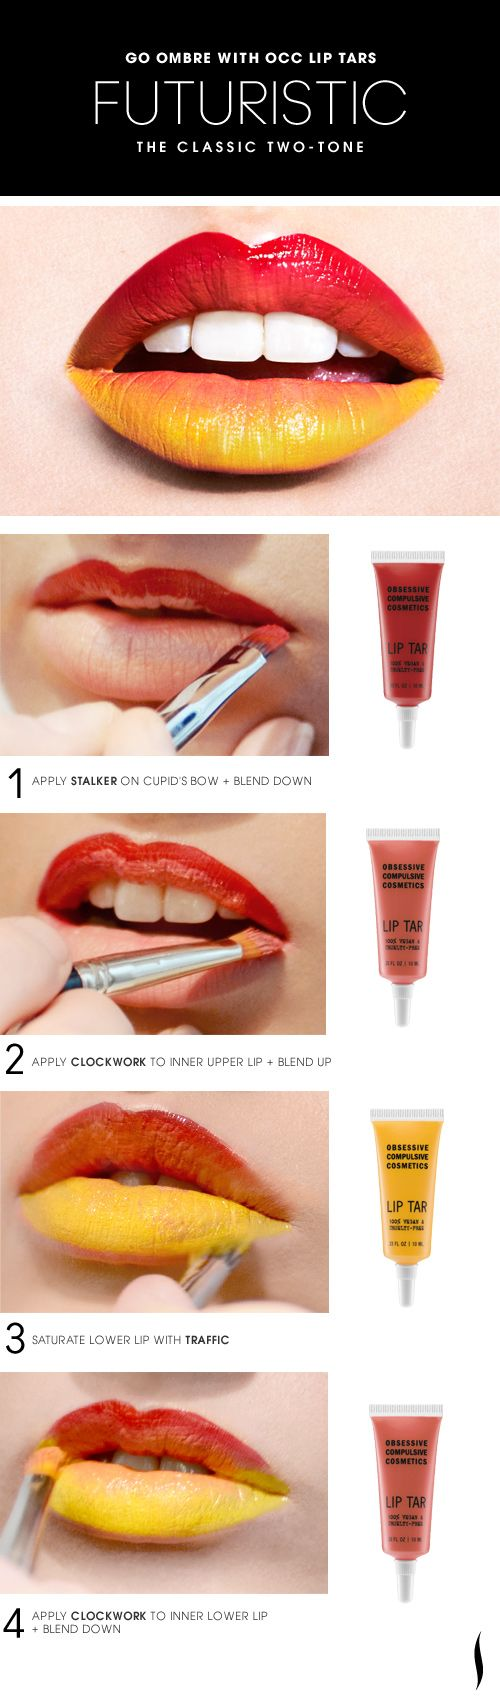 Try combining #OCC Lip Tars using bold colors and graphic treatments for an eletropop effect.